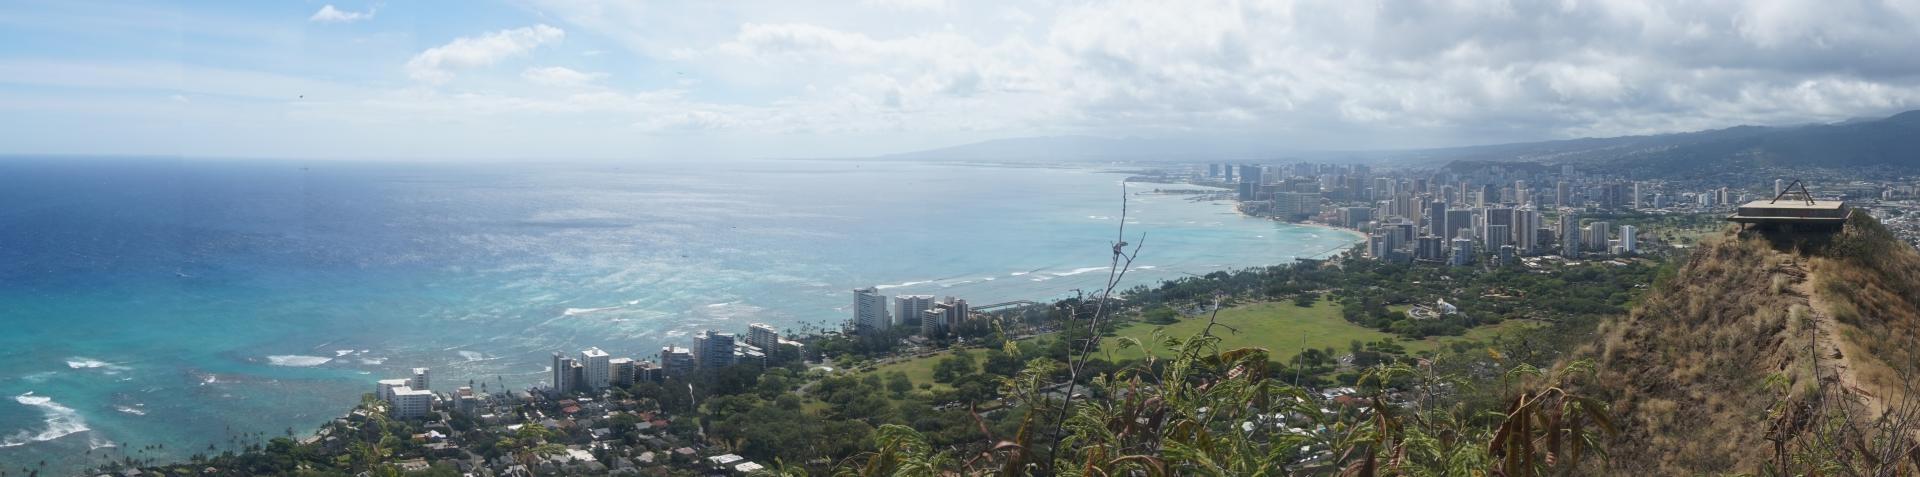 Diamond Head State Monument views, O'ahu - June 2017